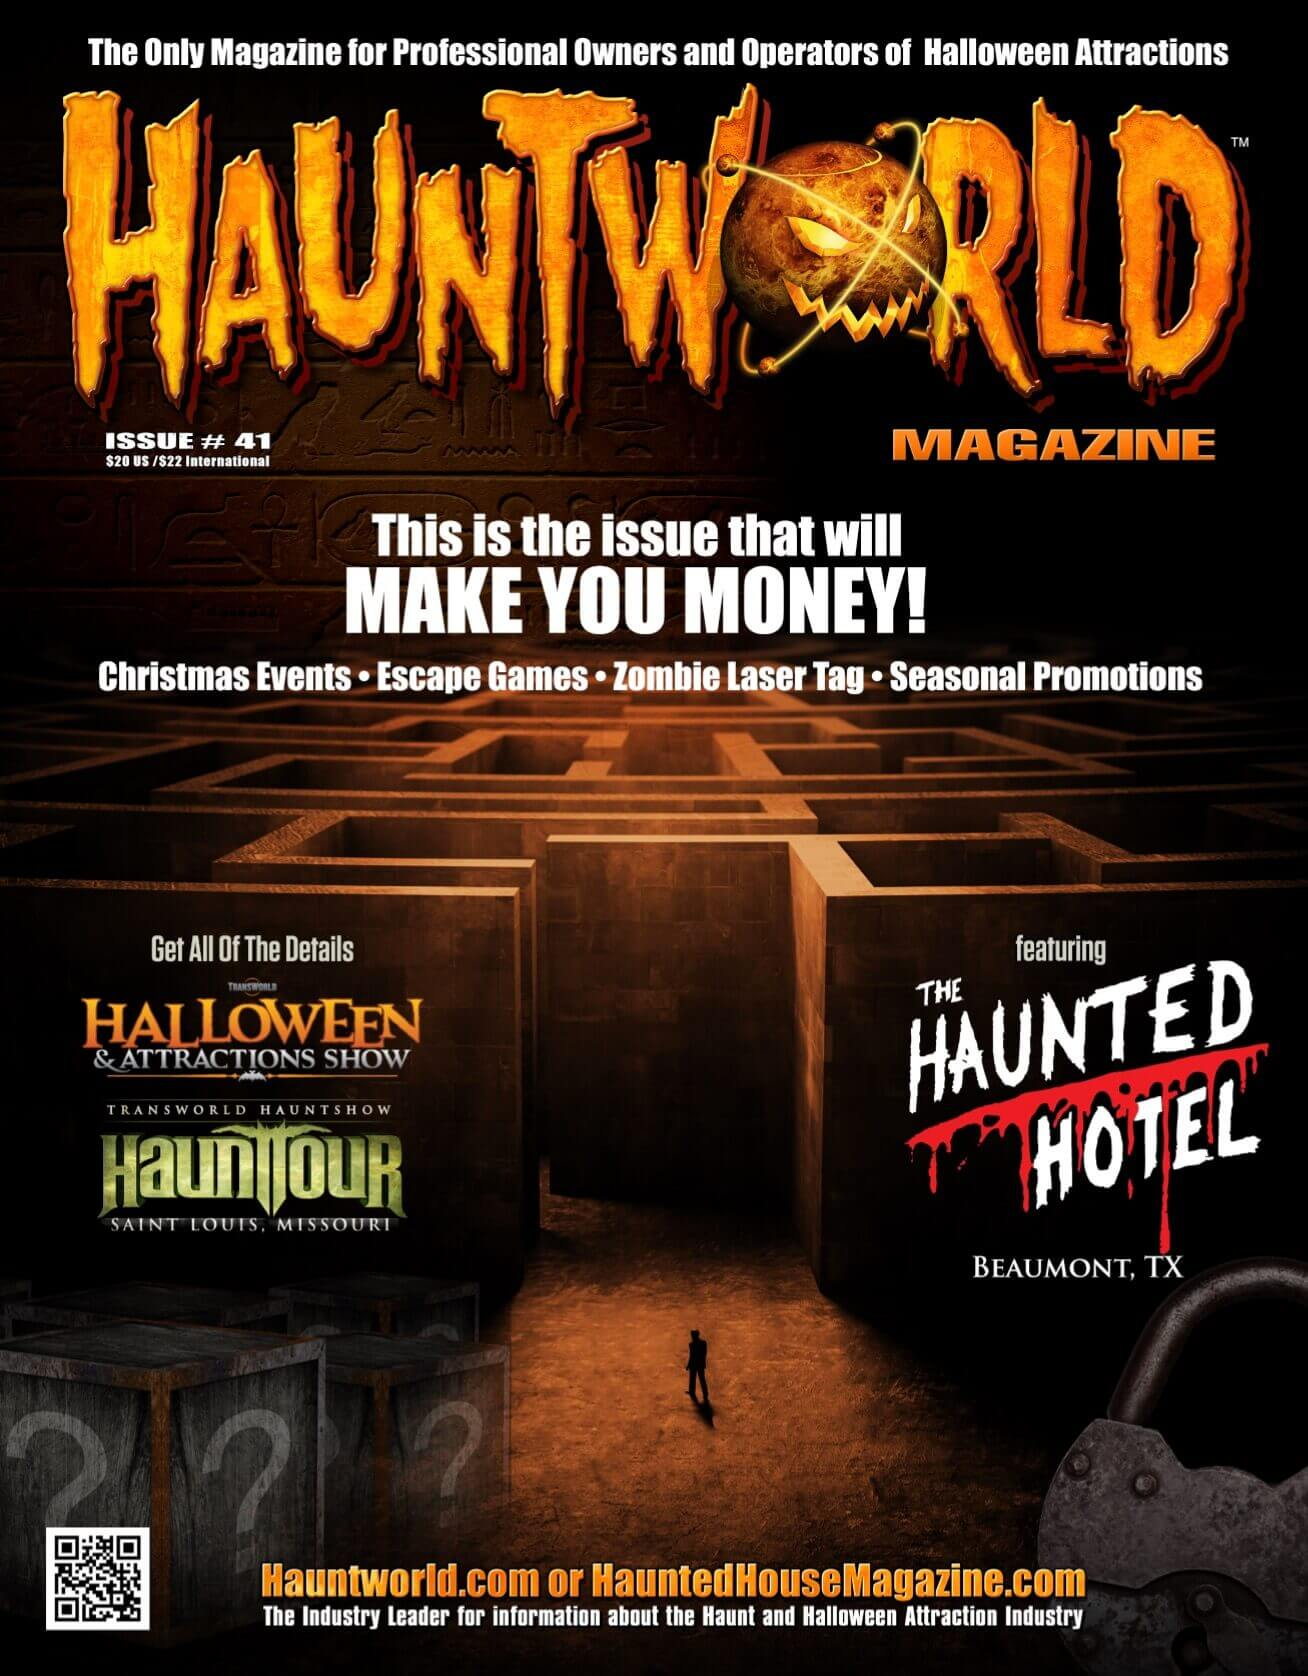 Haunted House Haunted Houses Halloween Attractions